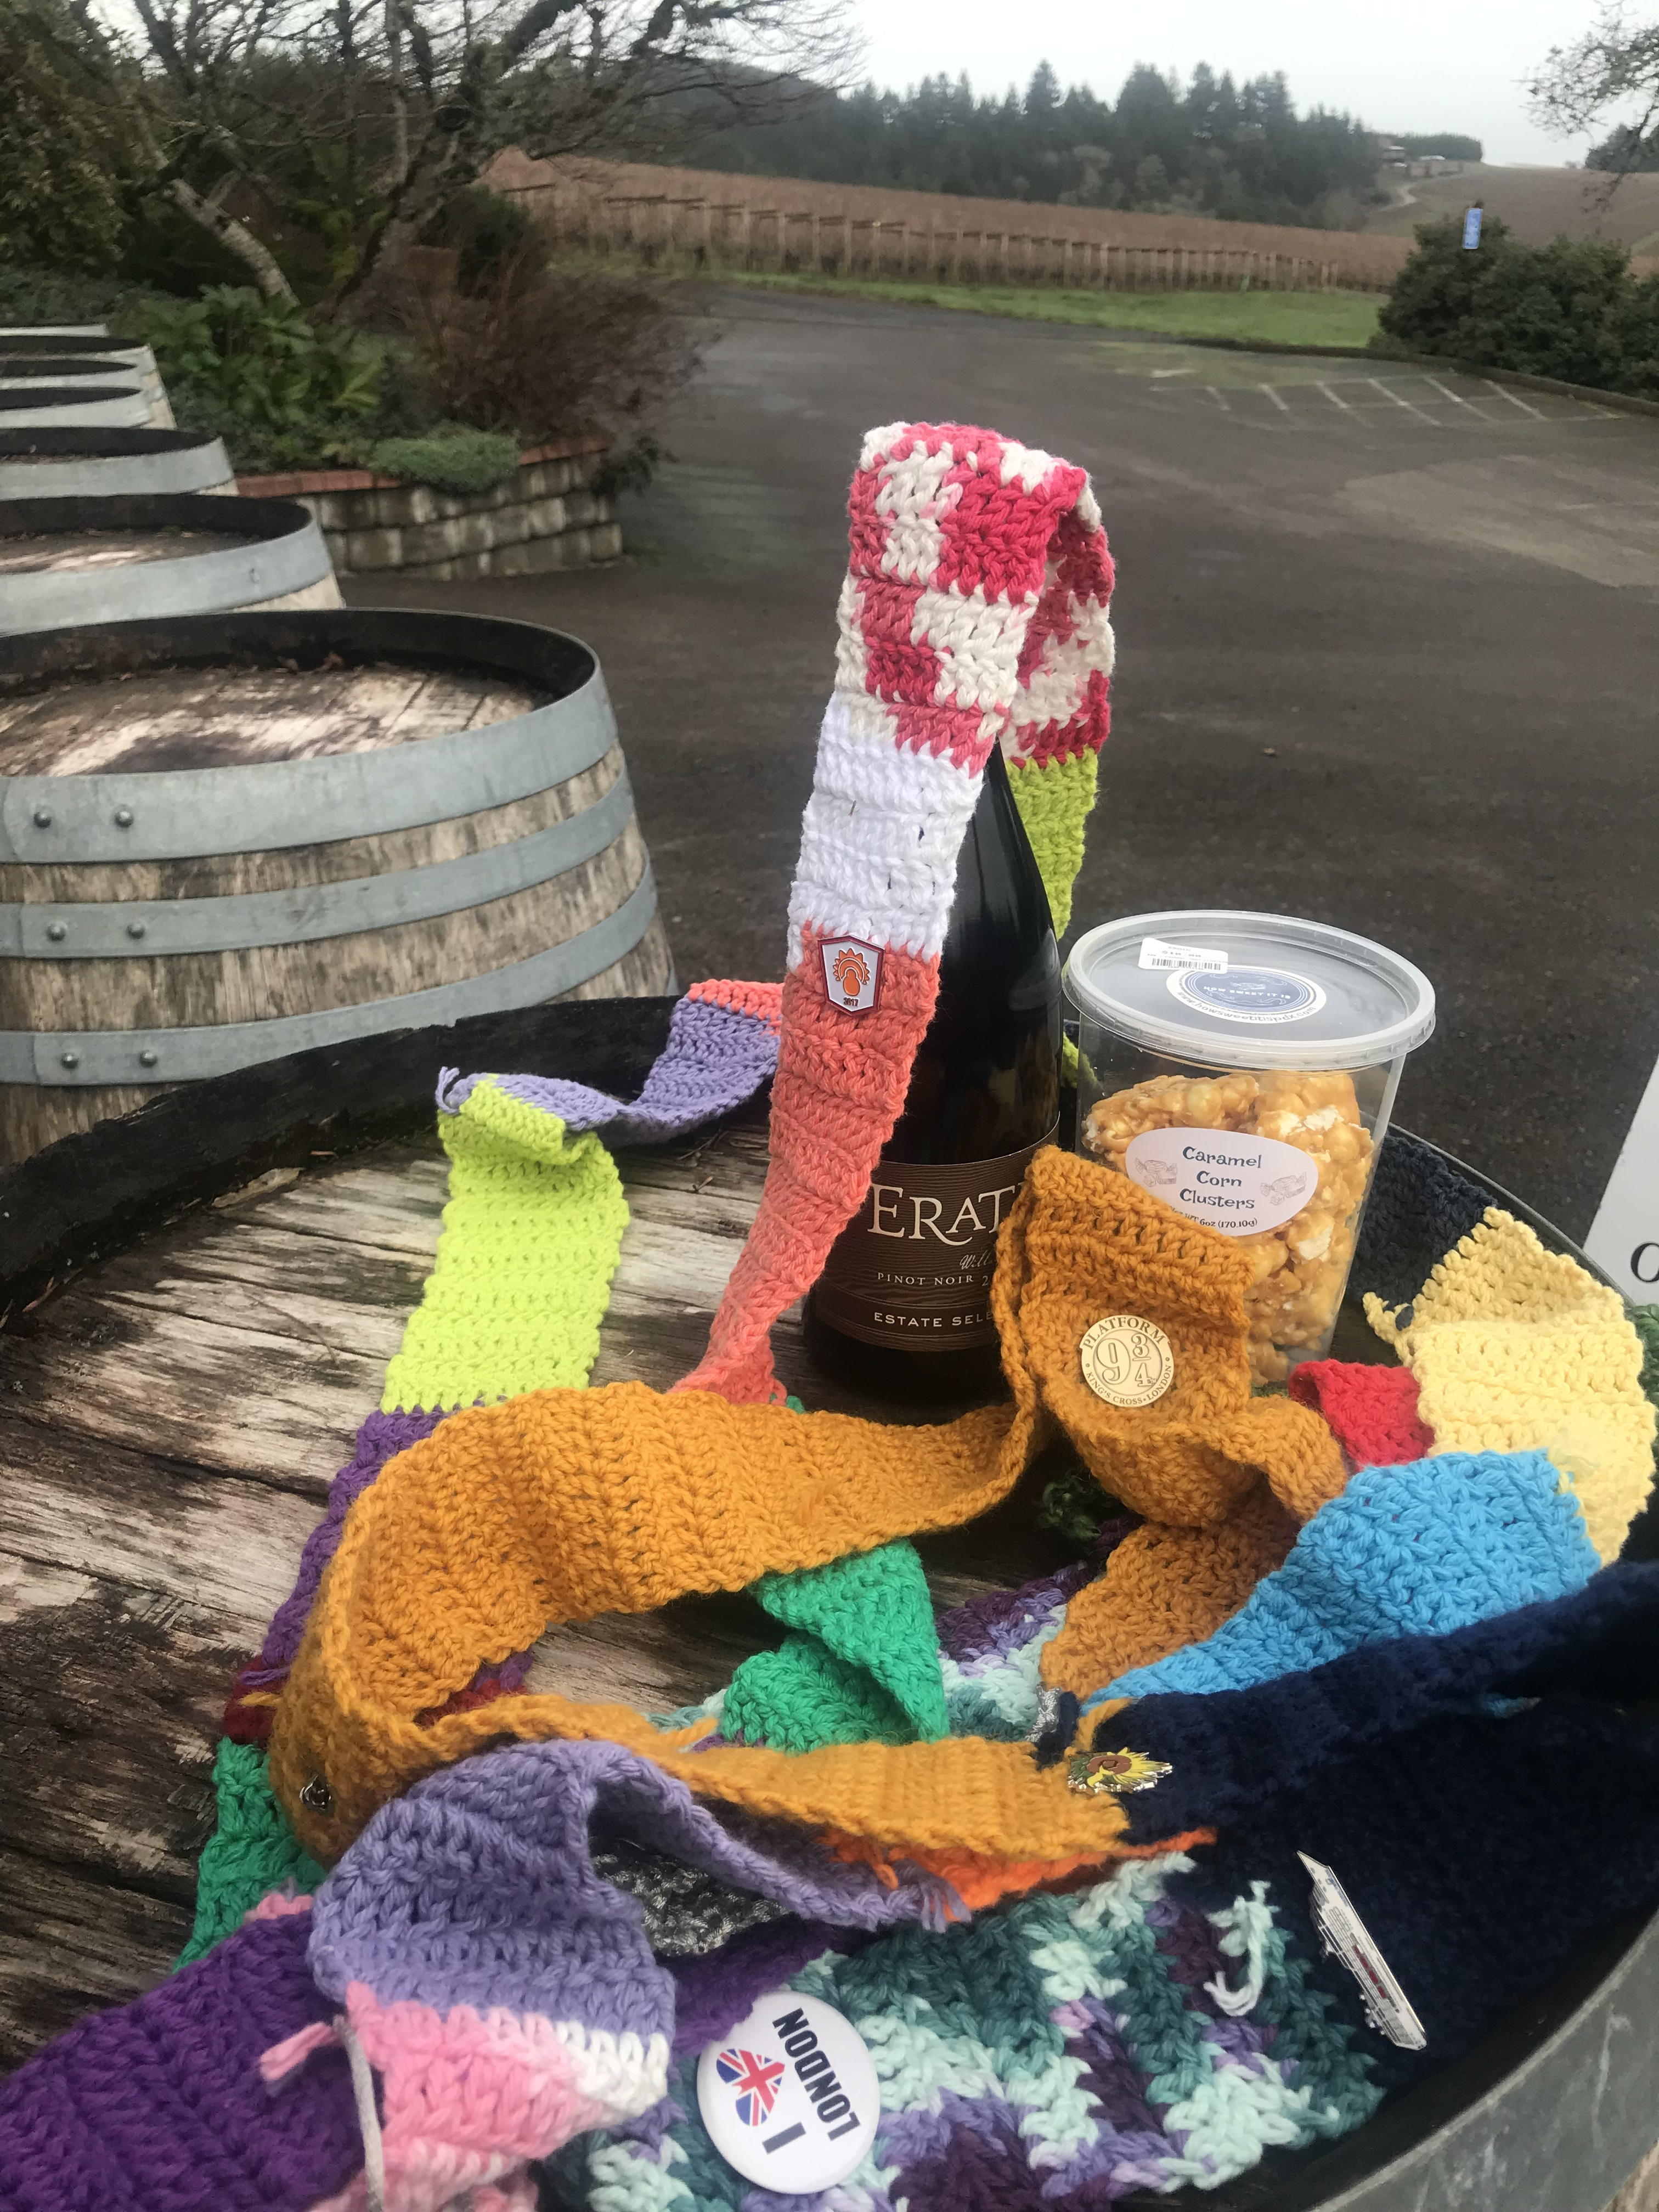 The Ugly Scarf at Erath Winery